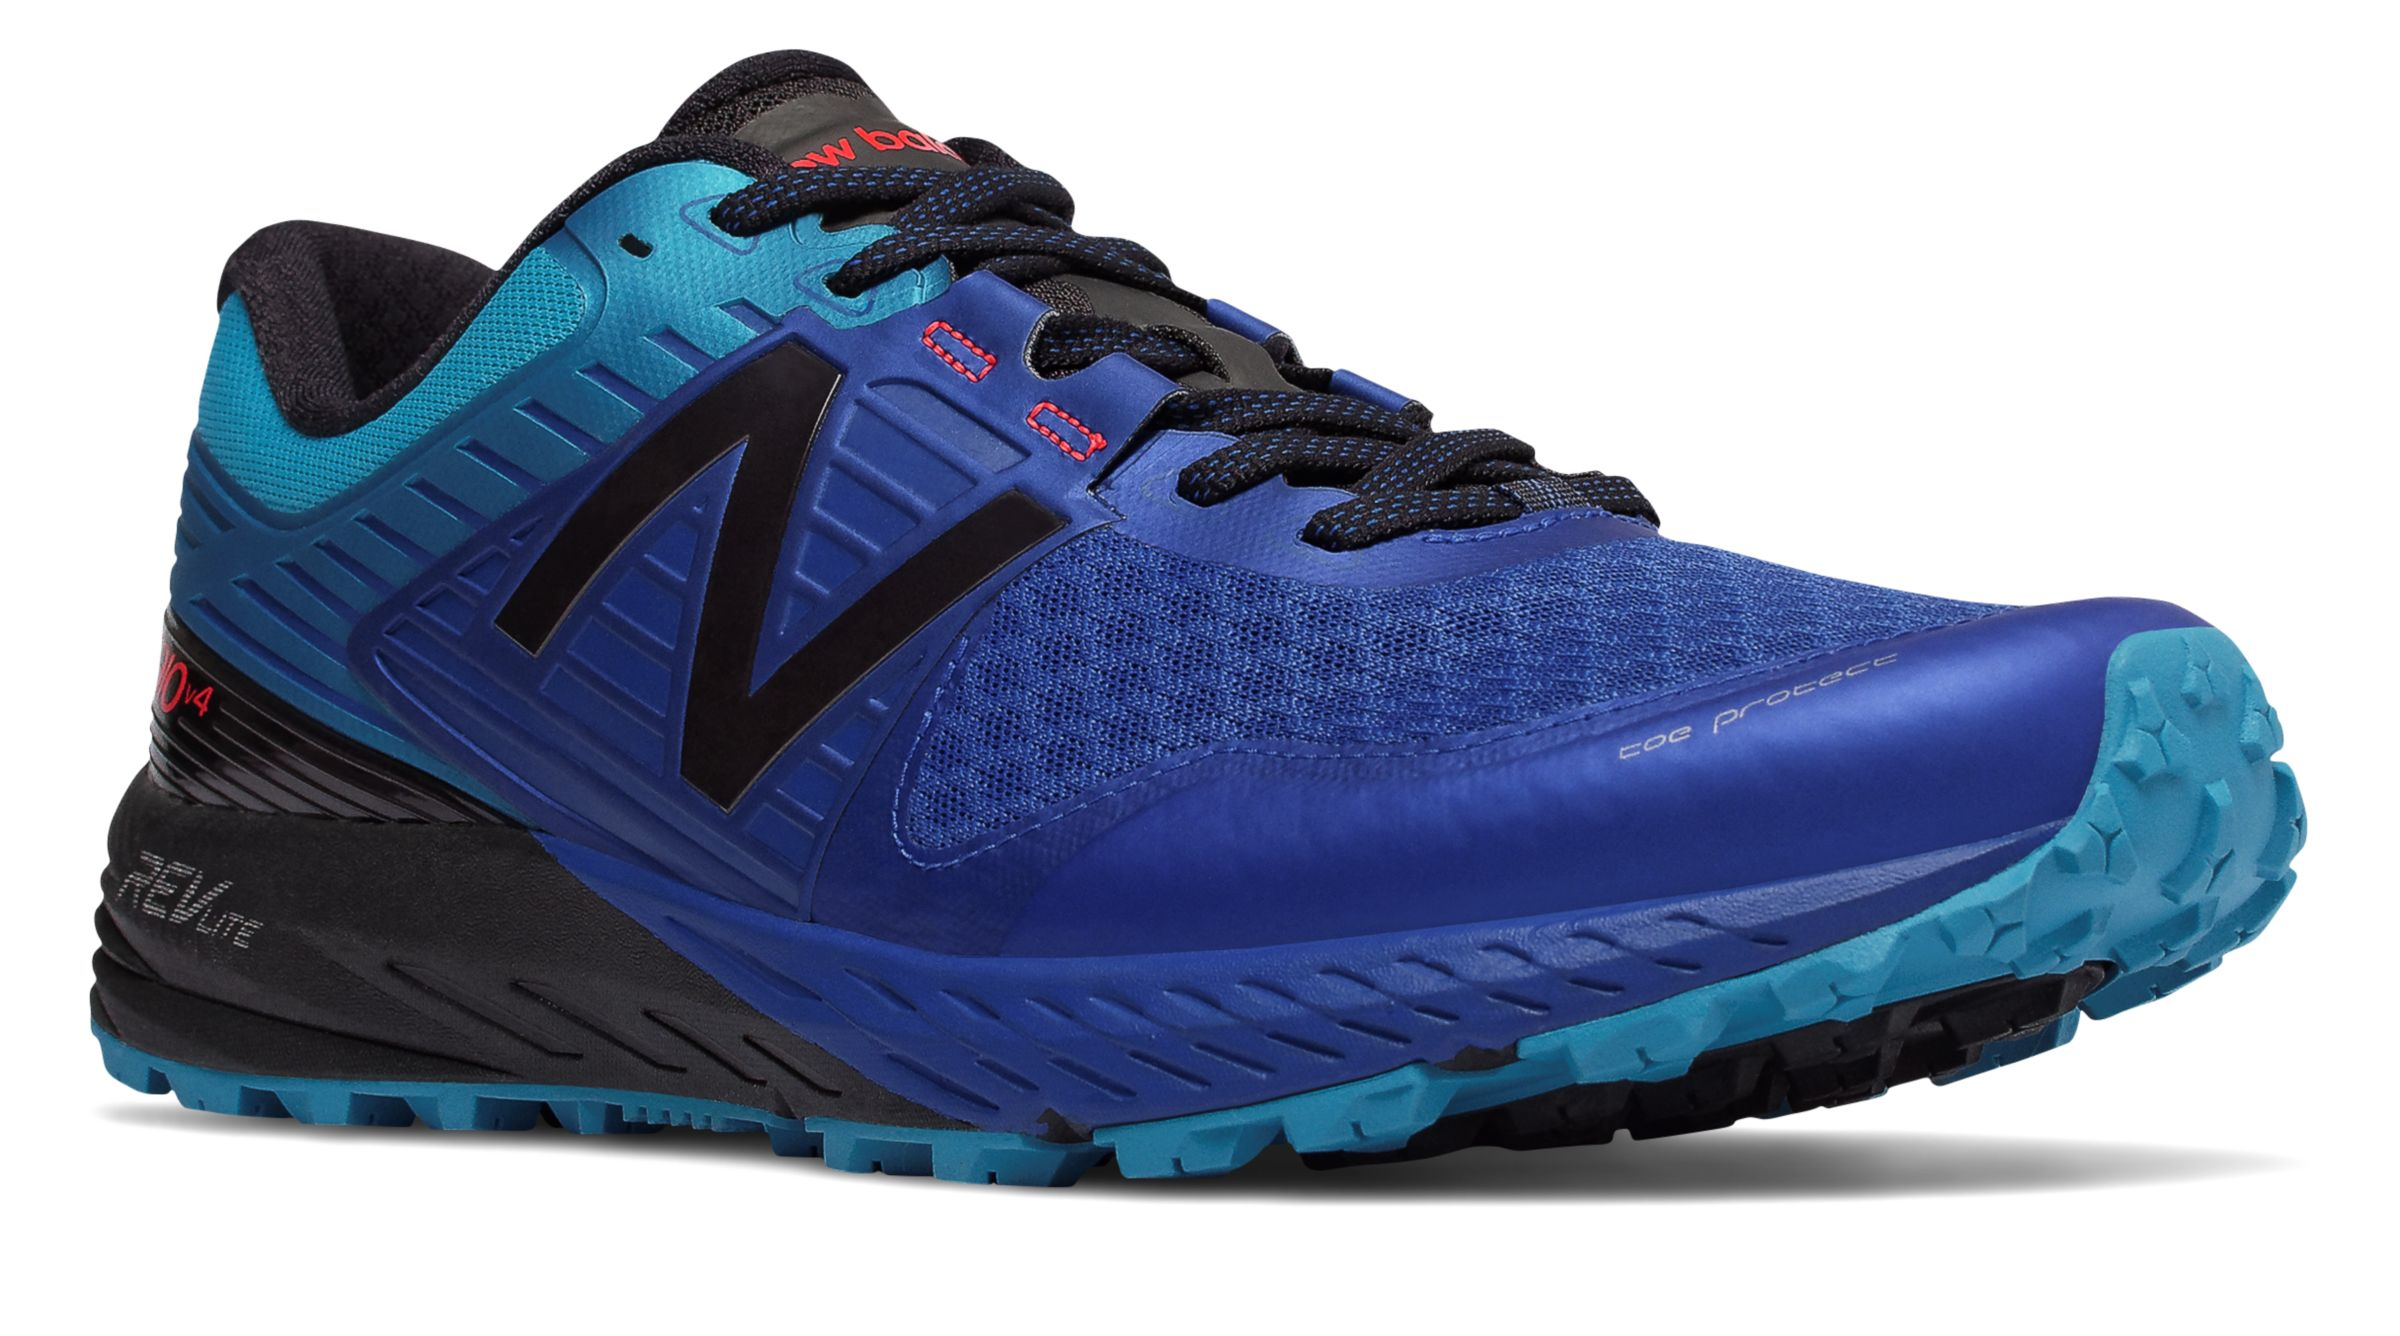 NB 910v4 Trail, Pacific with Maldives Blue & Black